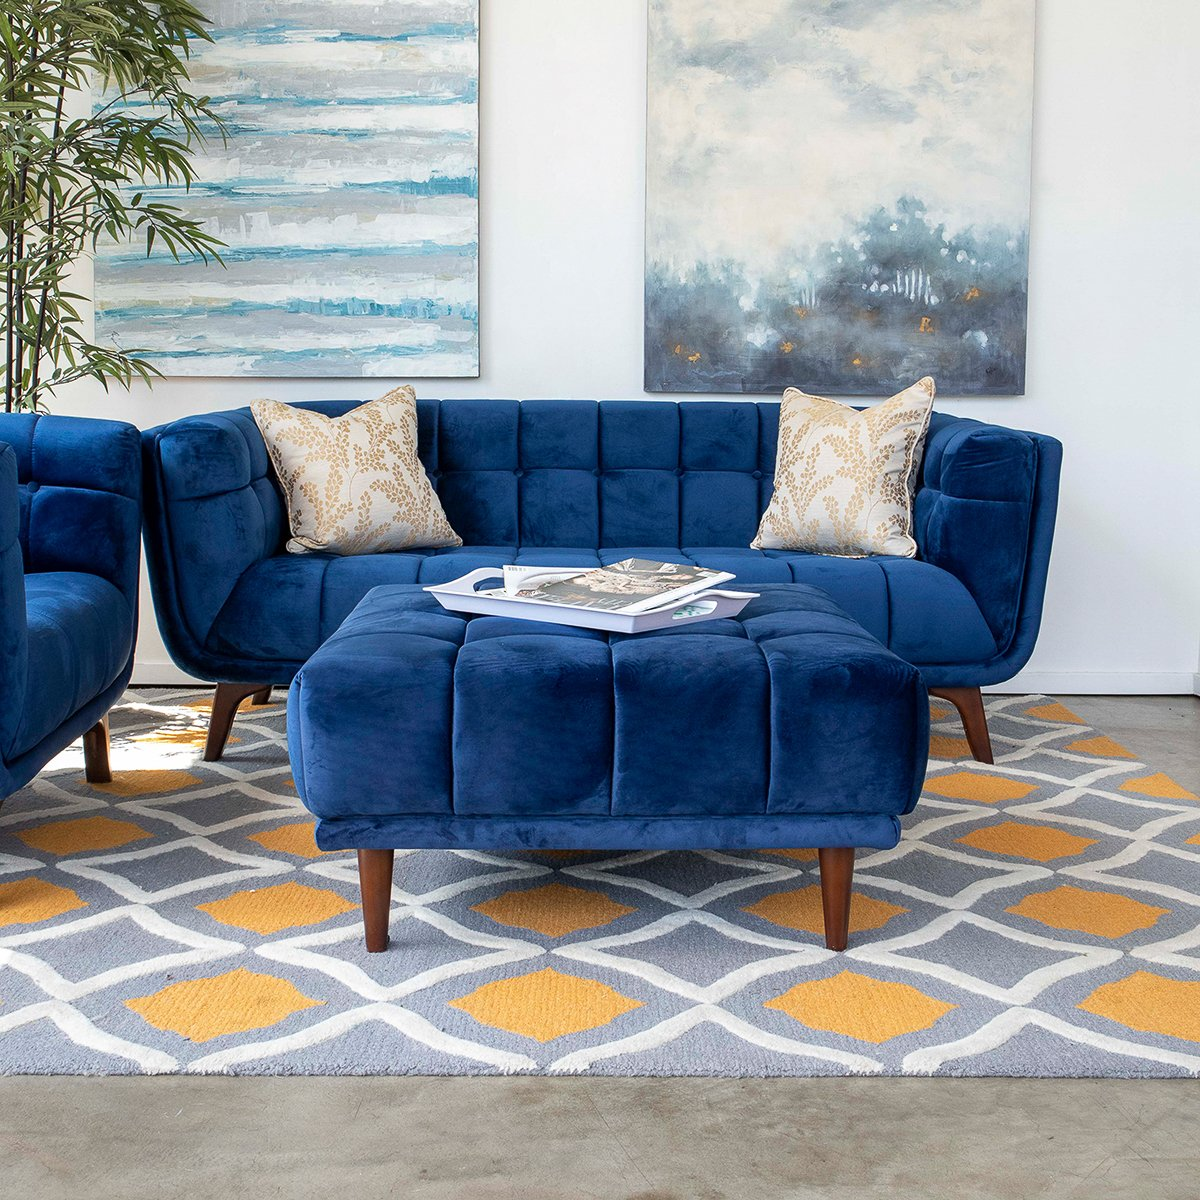 Follow This Advice When Thinking About Buying Furnishings